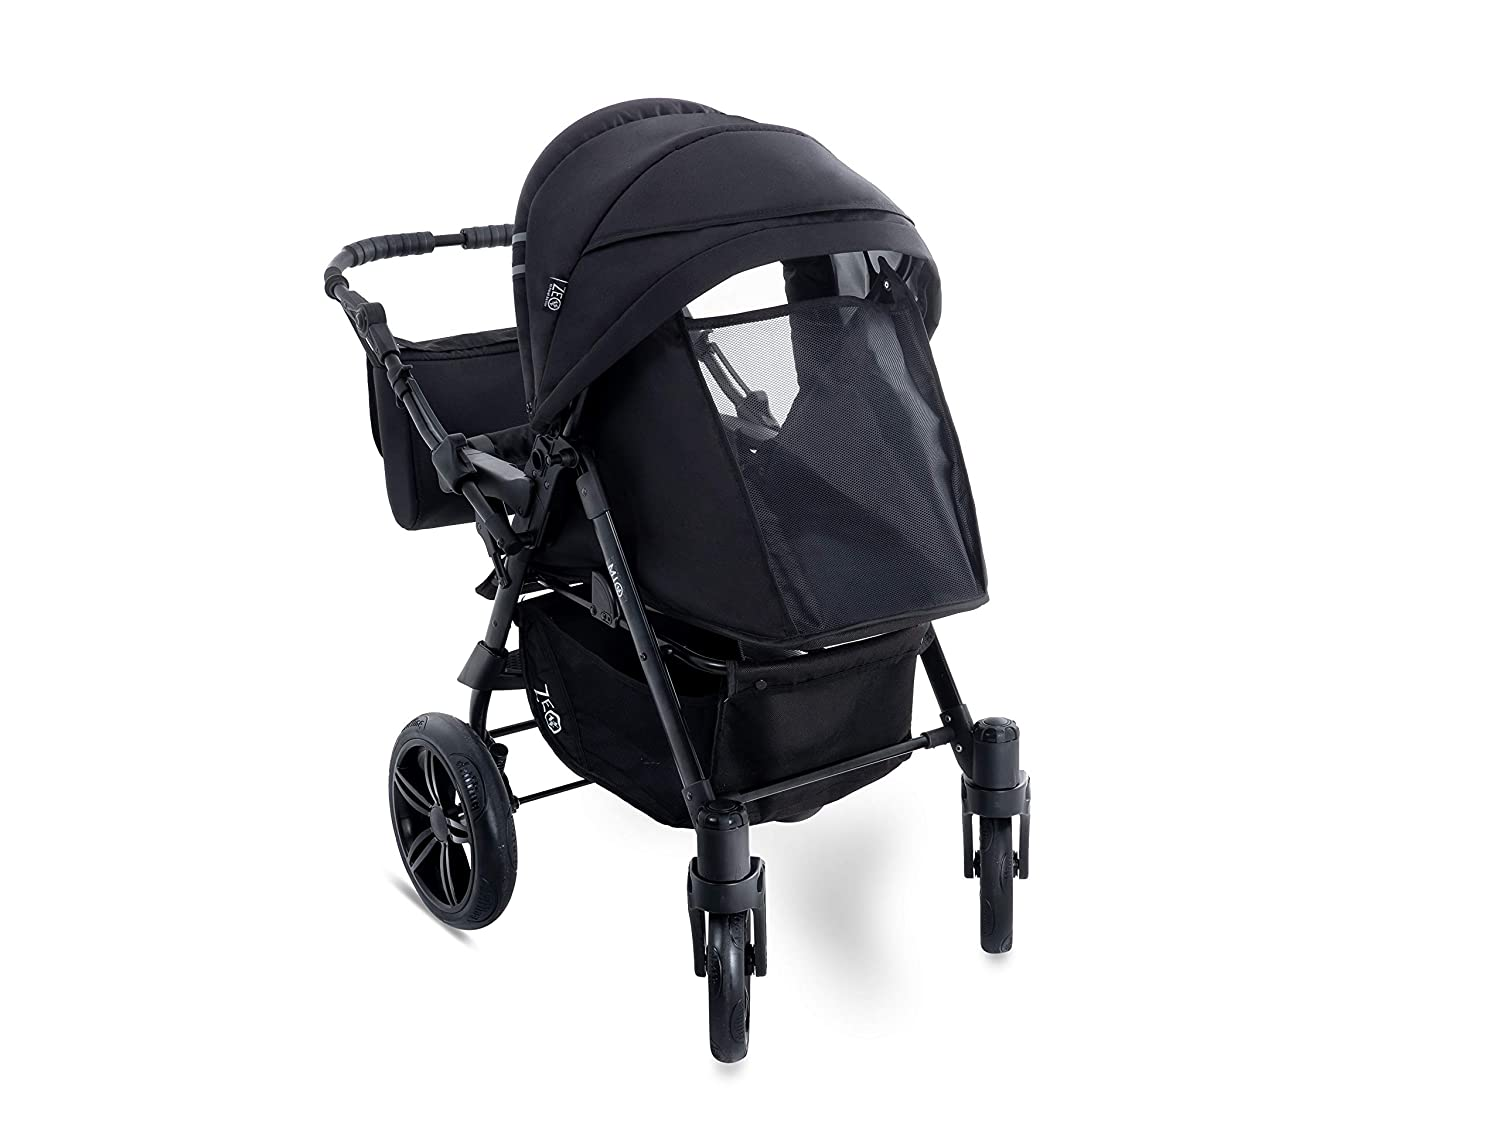 M7 All You Need Baby Pram Zeo Mio 3in1 Set carrycot Gondola Buggy Sport Part Pushchair car seat